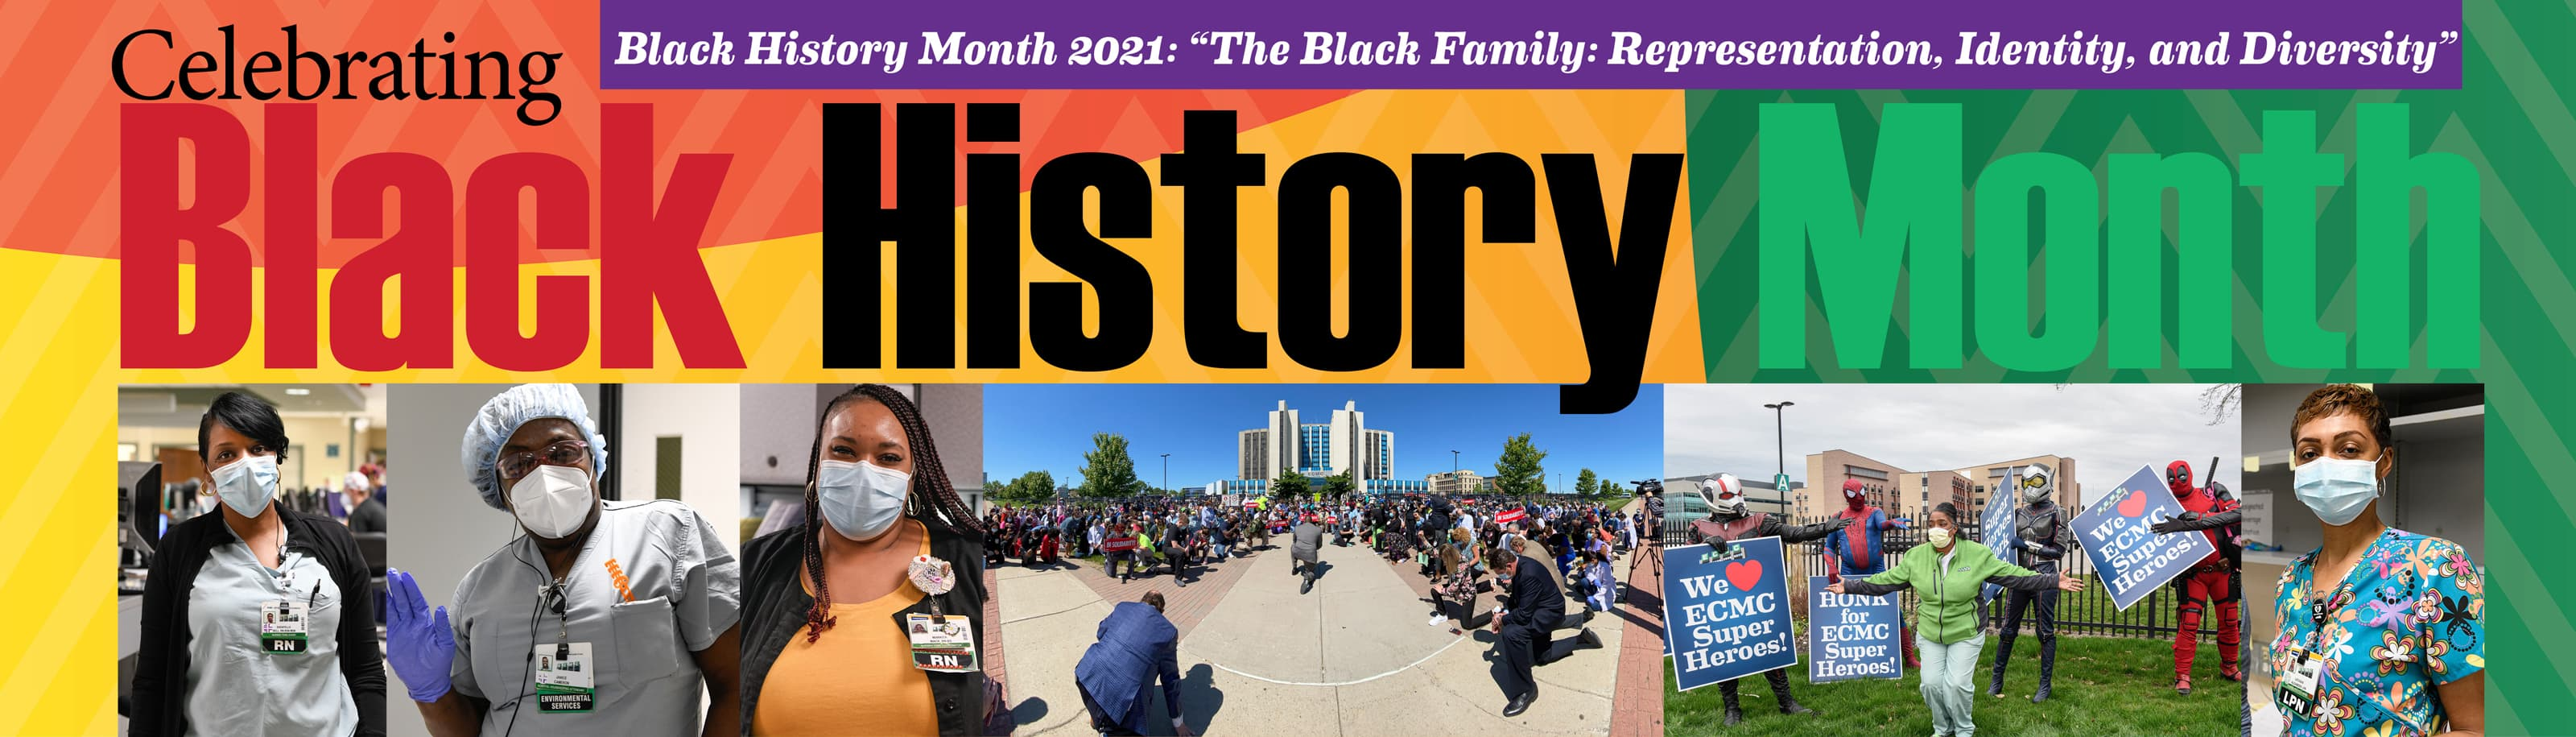 ECMC is Celebrating Black History Month